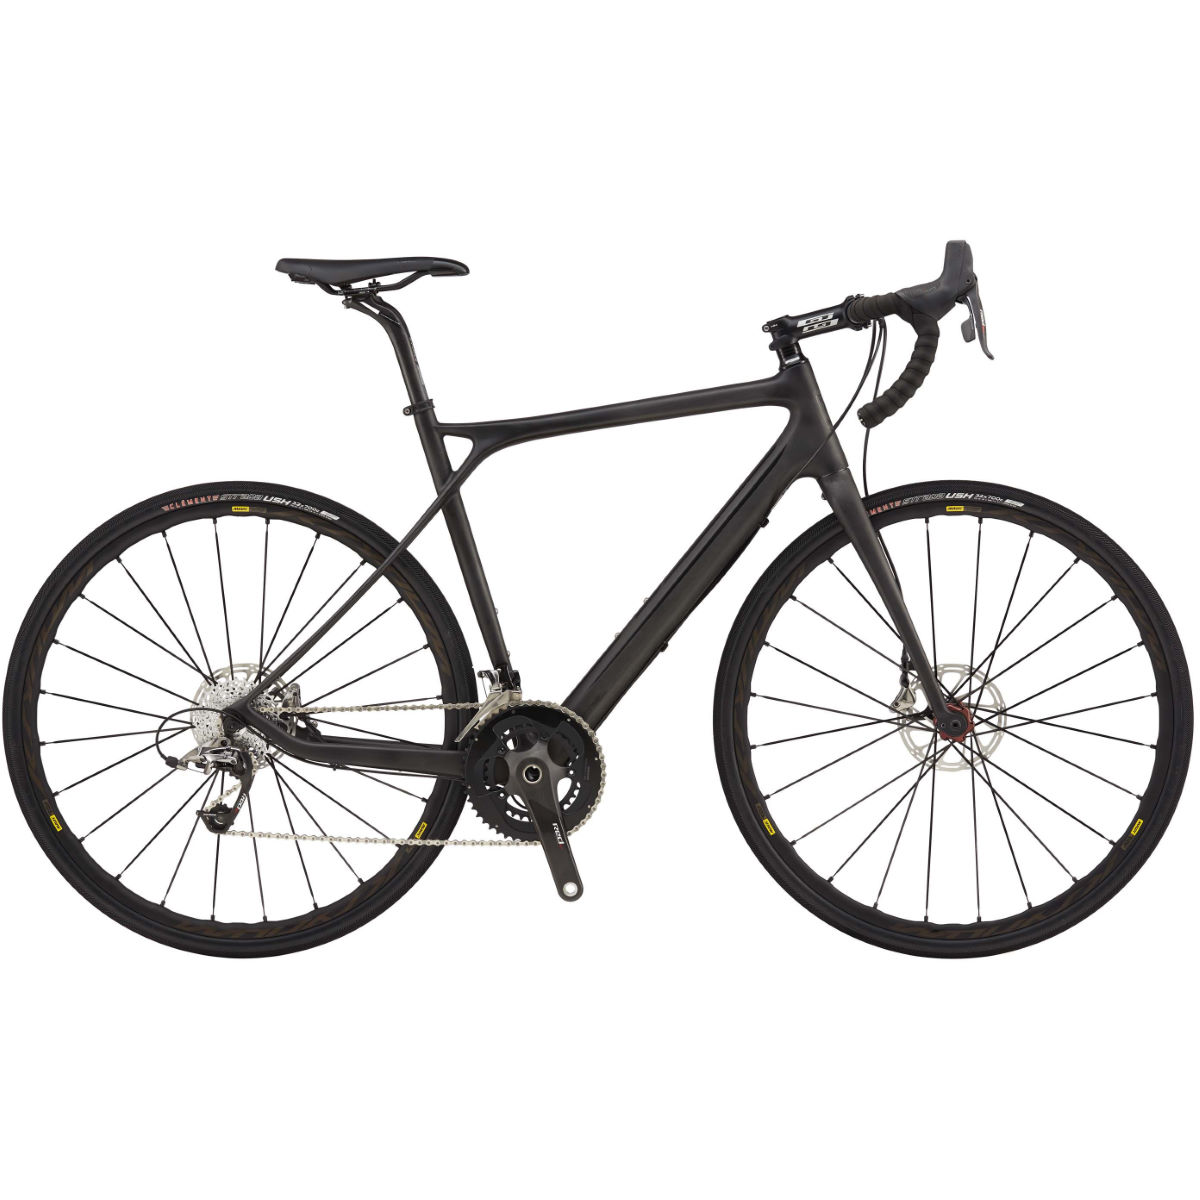 Vélode route GT Grade Carbone (aventure, SRAM Red, 2017) - 56cm